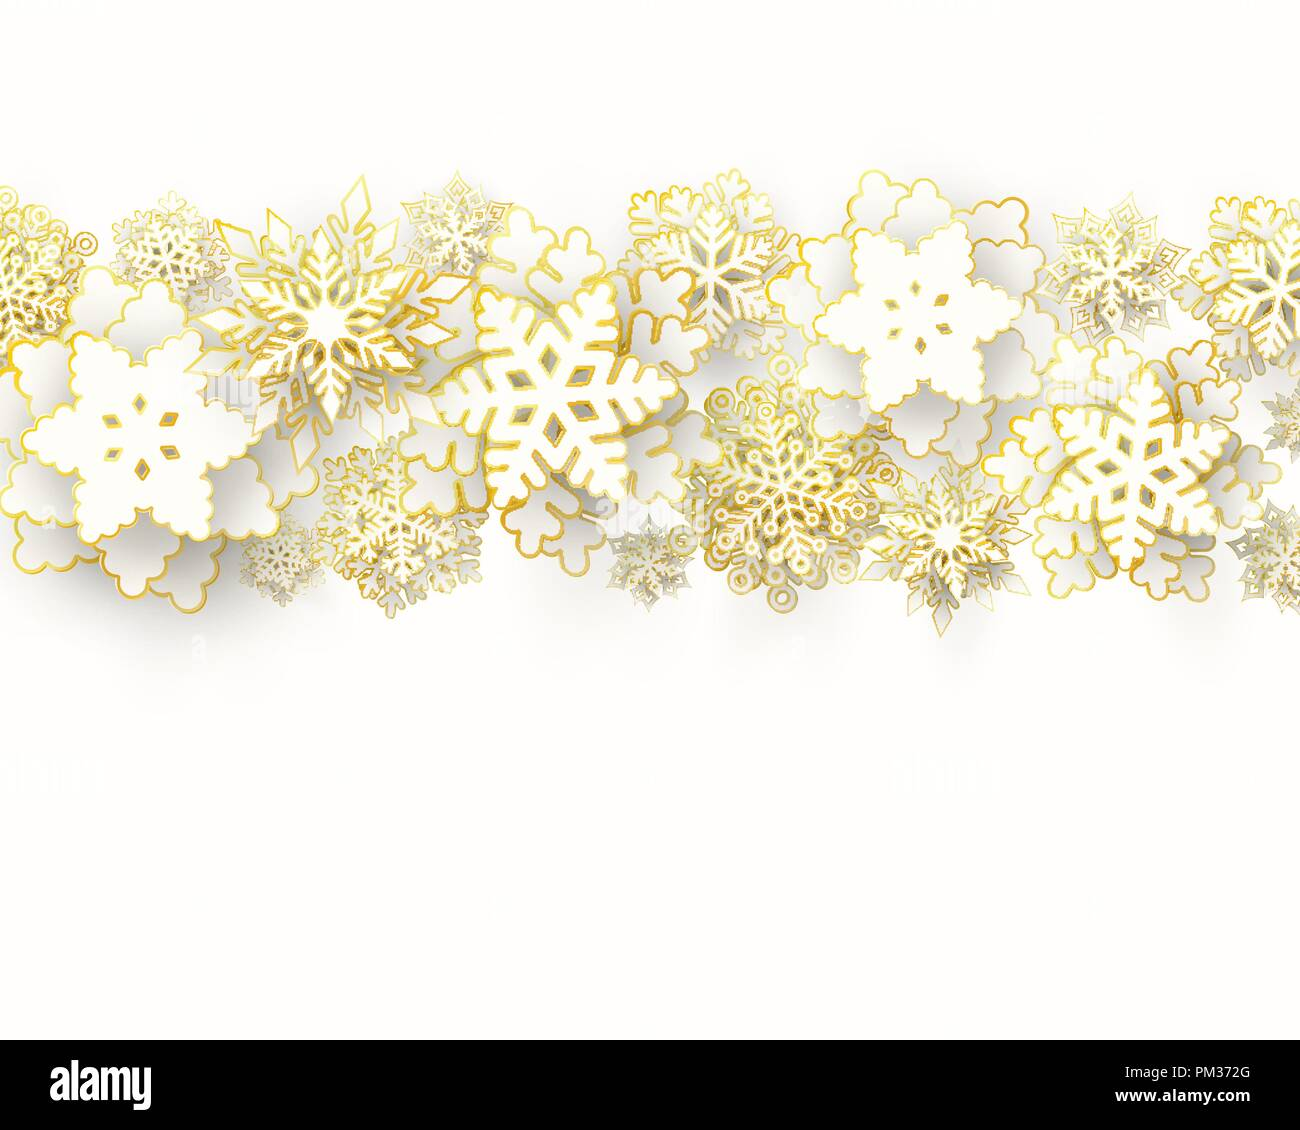 vector merry christmas and happy new year banner